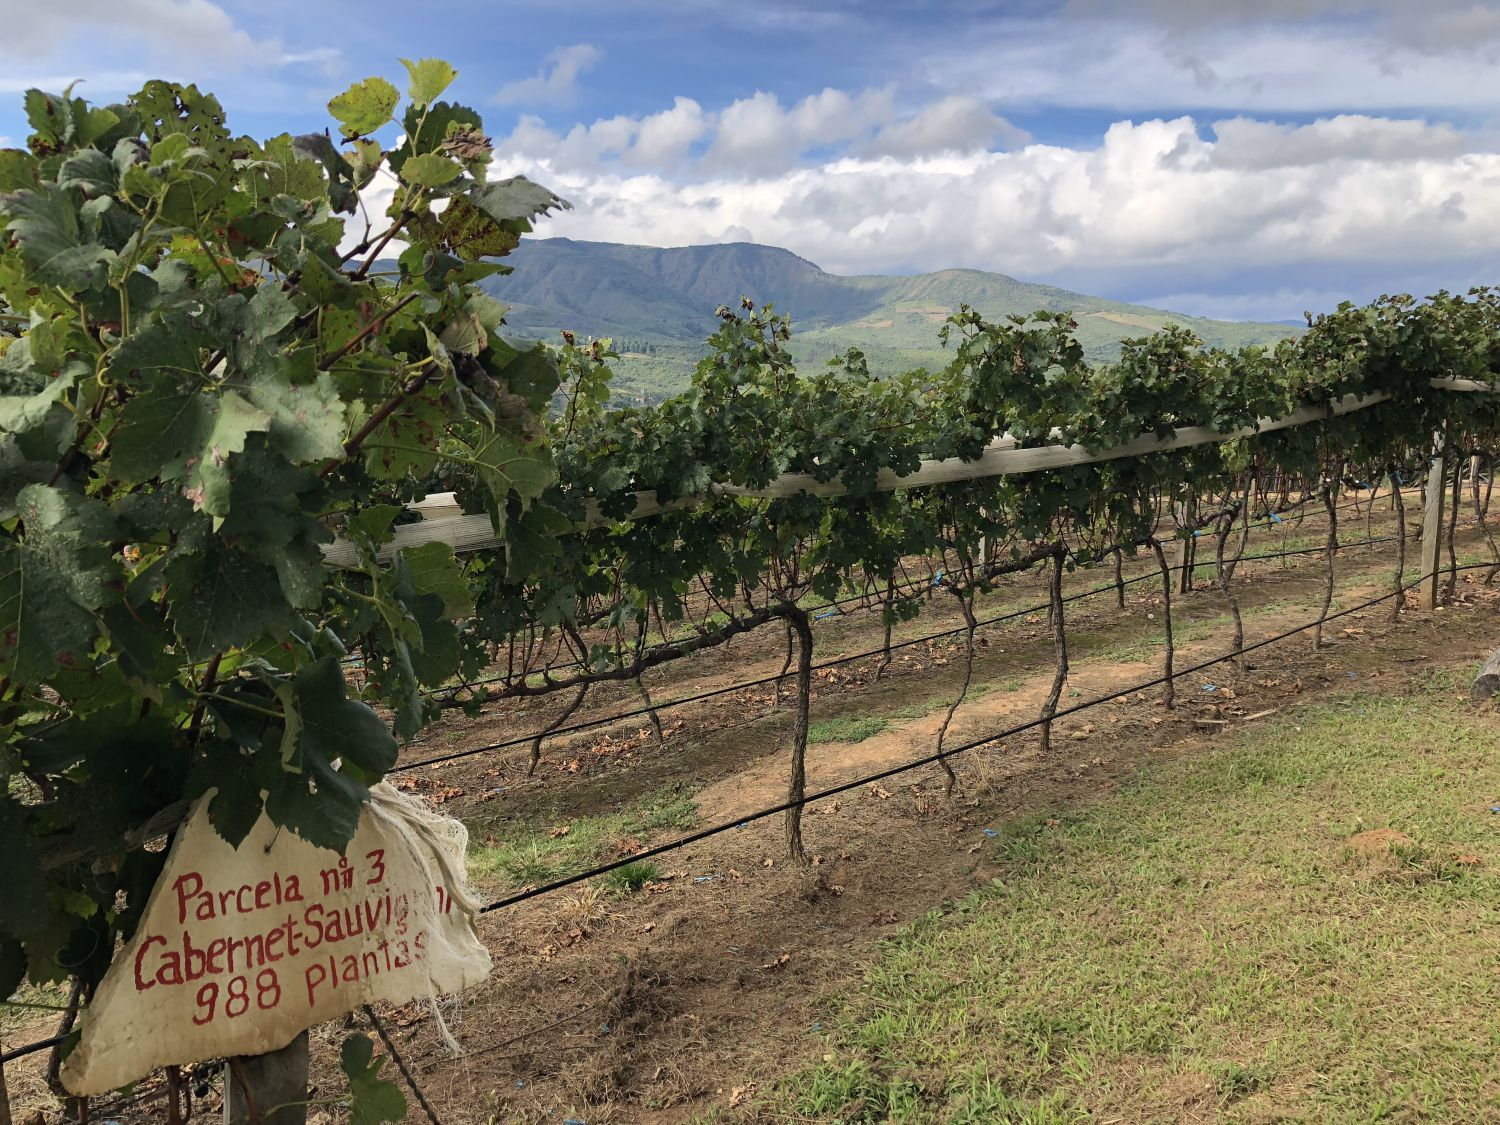 Cabernet Sauvignon is a recent addition to the valleys, but it is very adaptable and its thick skin helps keep it resiliant in the altitude. Photo: Alexandra Whitney. @alexandrawhitney